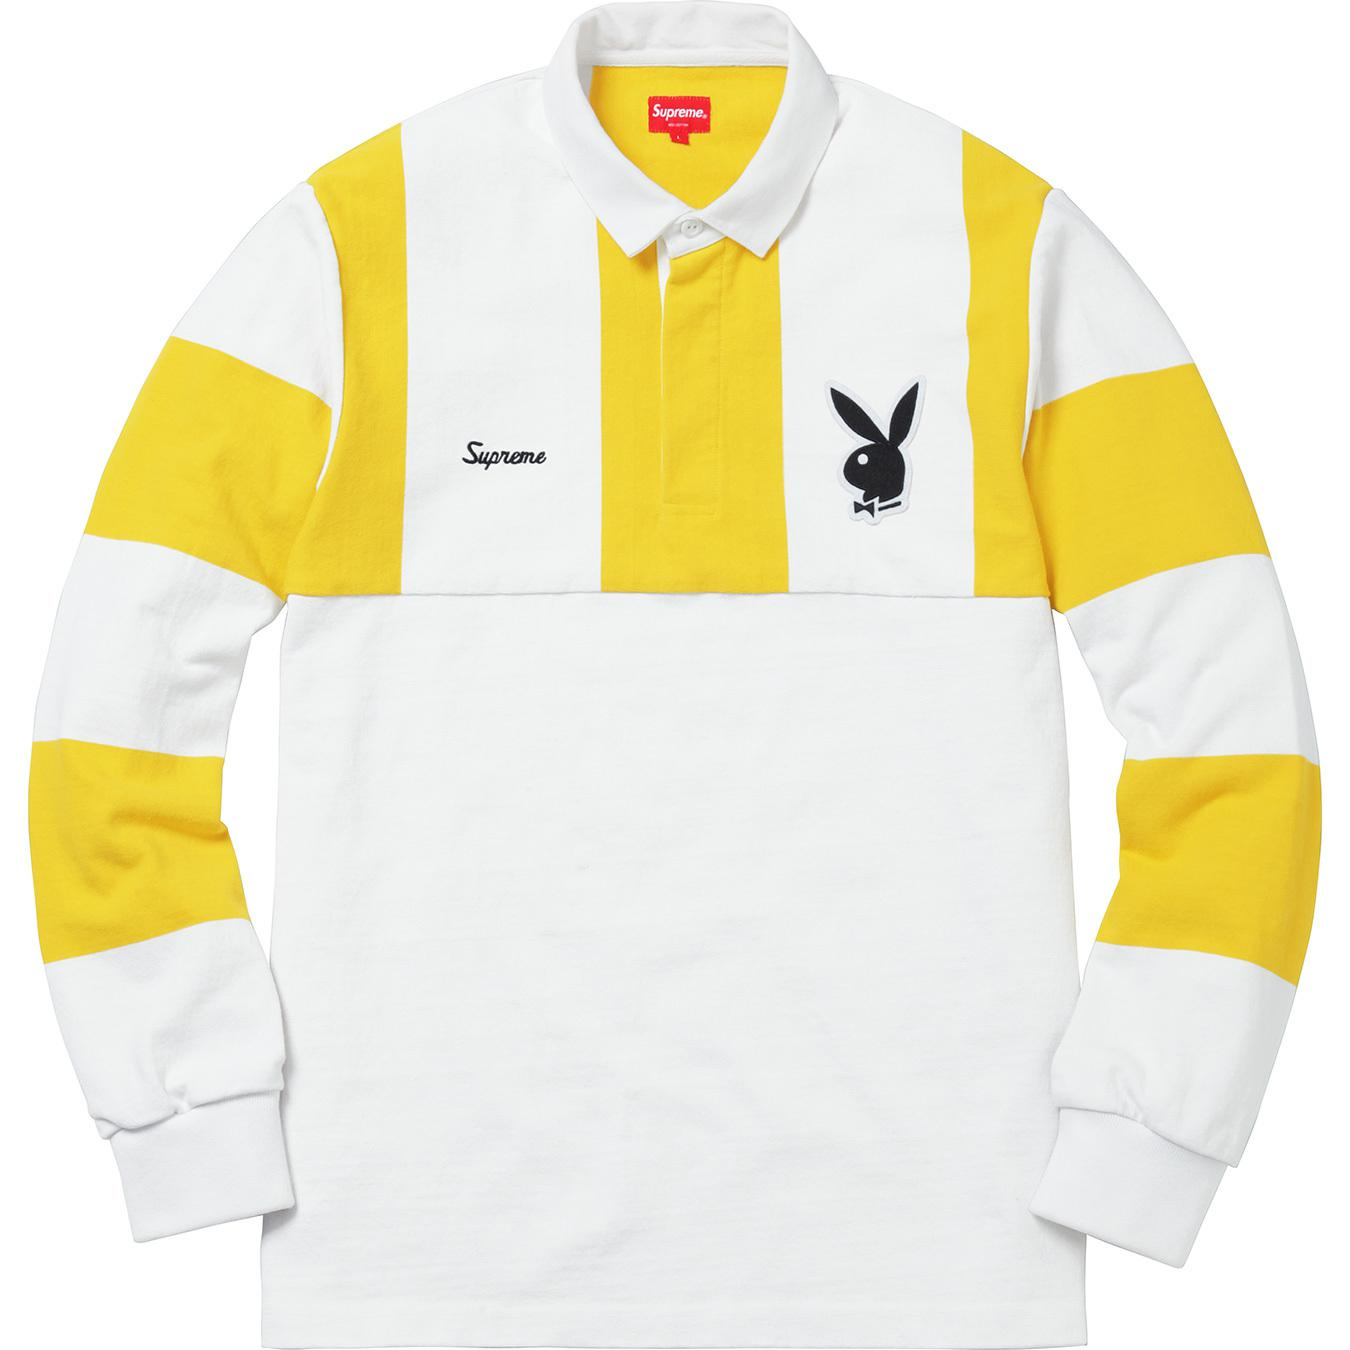 8299d604970 Supreme - Playboy Rugby White for Men - Lyst. View fullscreen